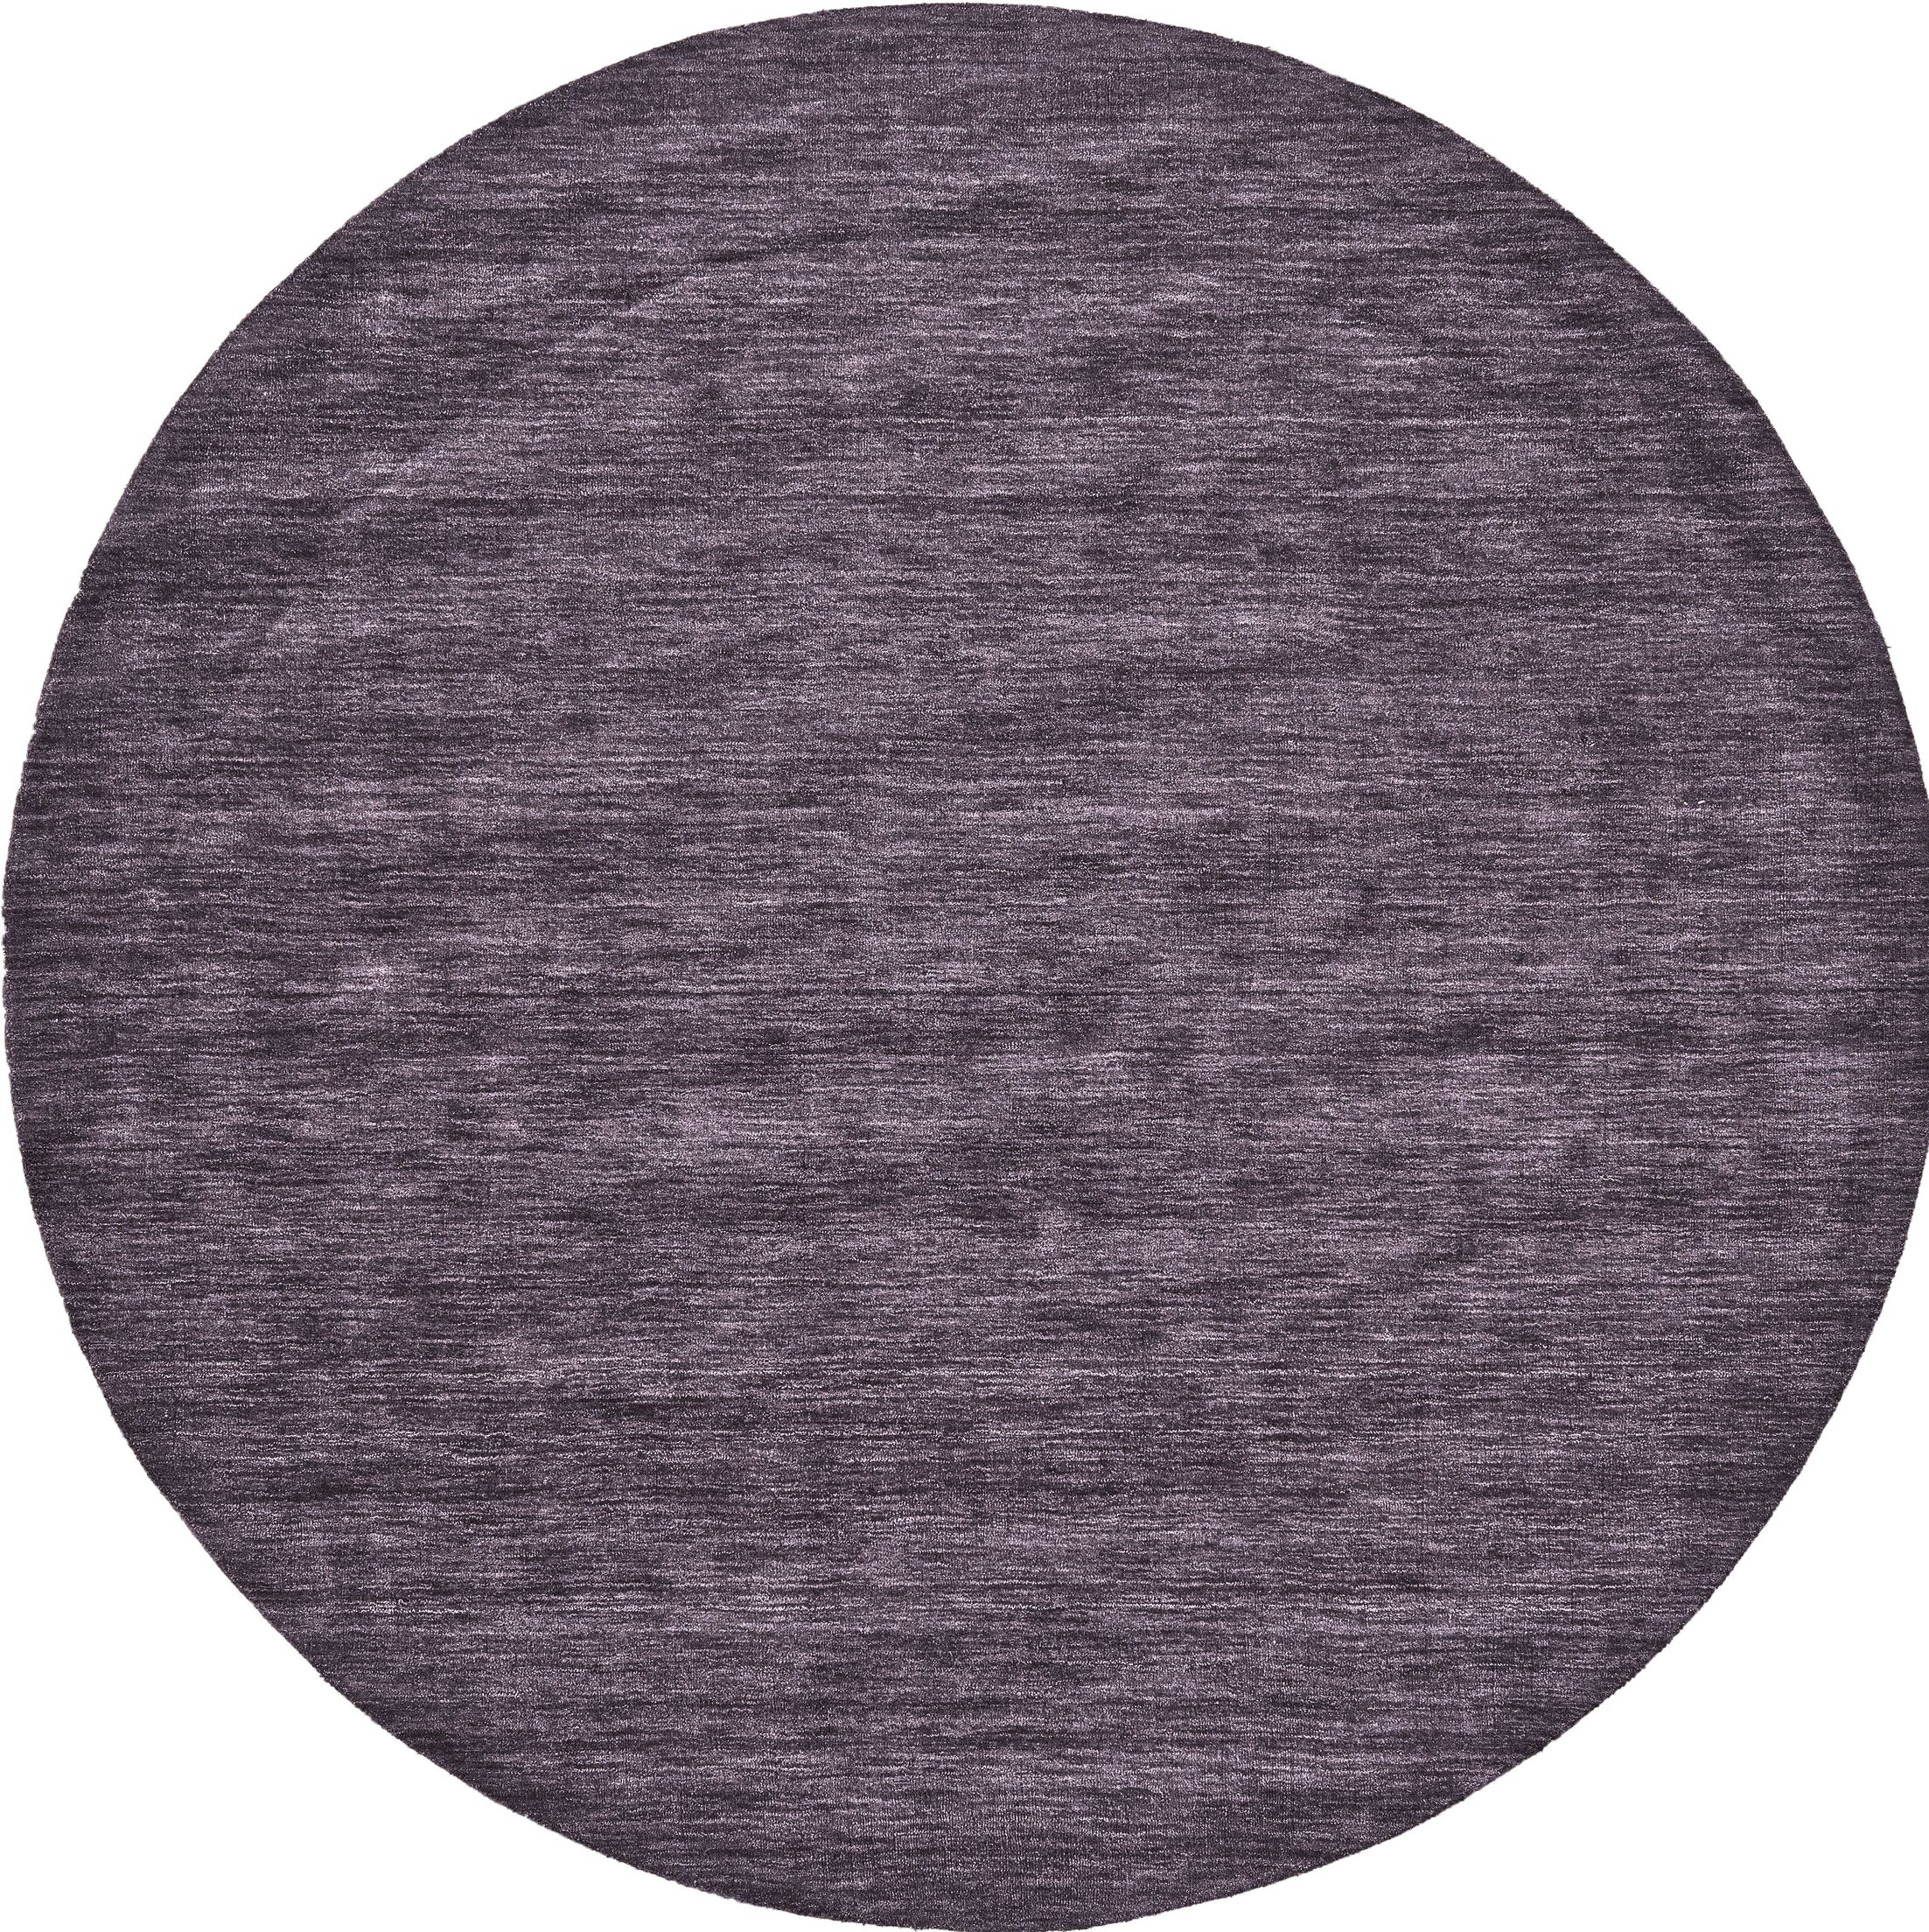 Diandra Hand-Loomed Purple Area Rug Rug Size: Round 10'